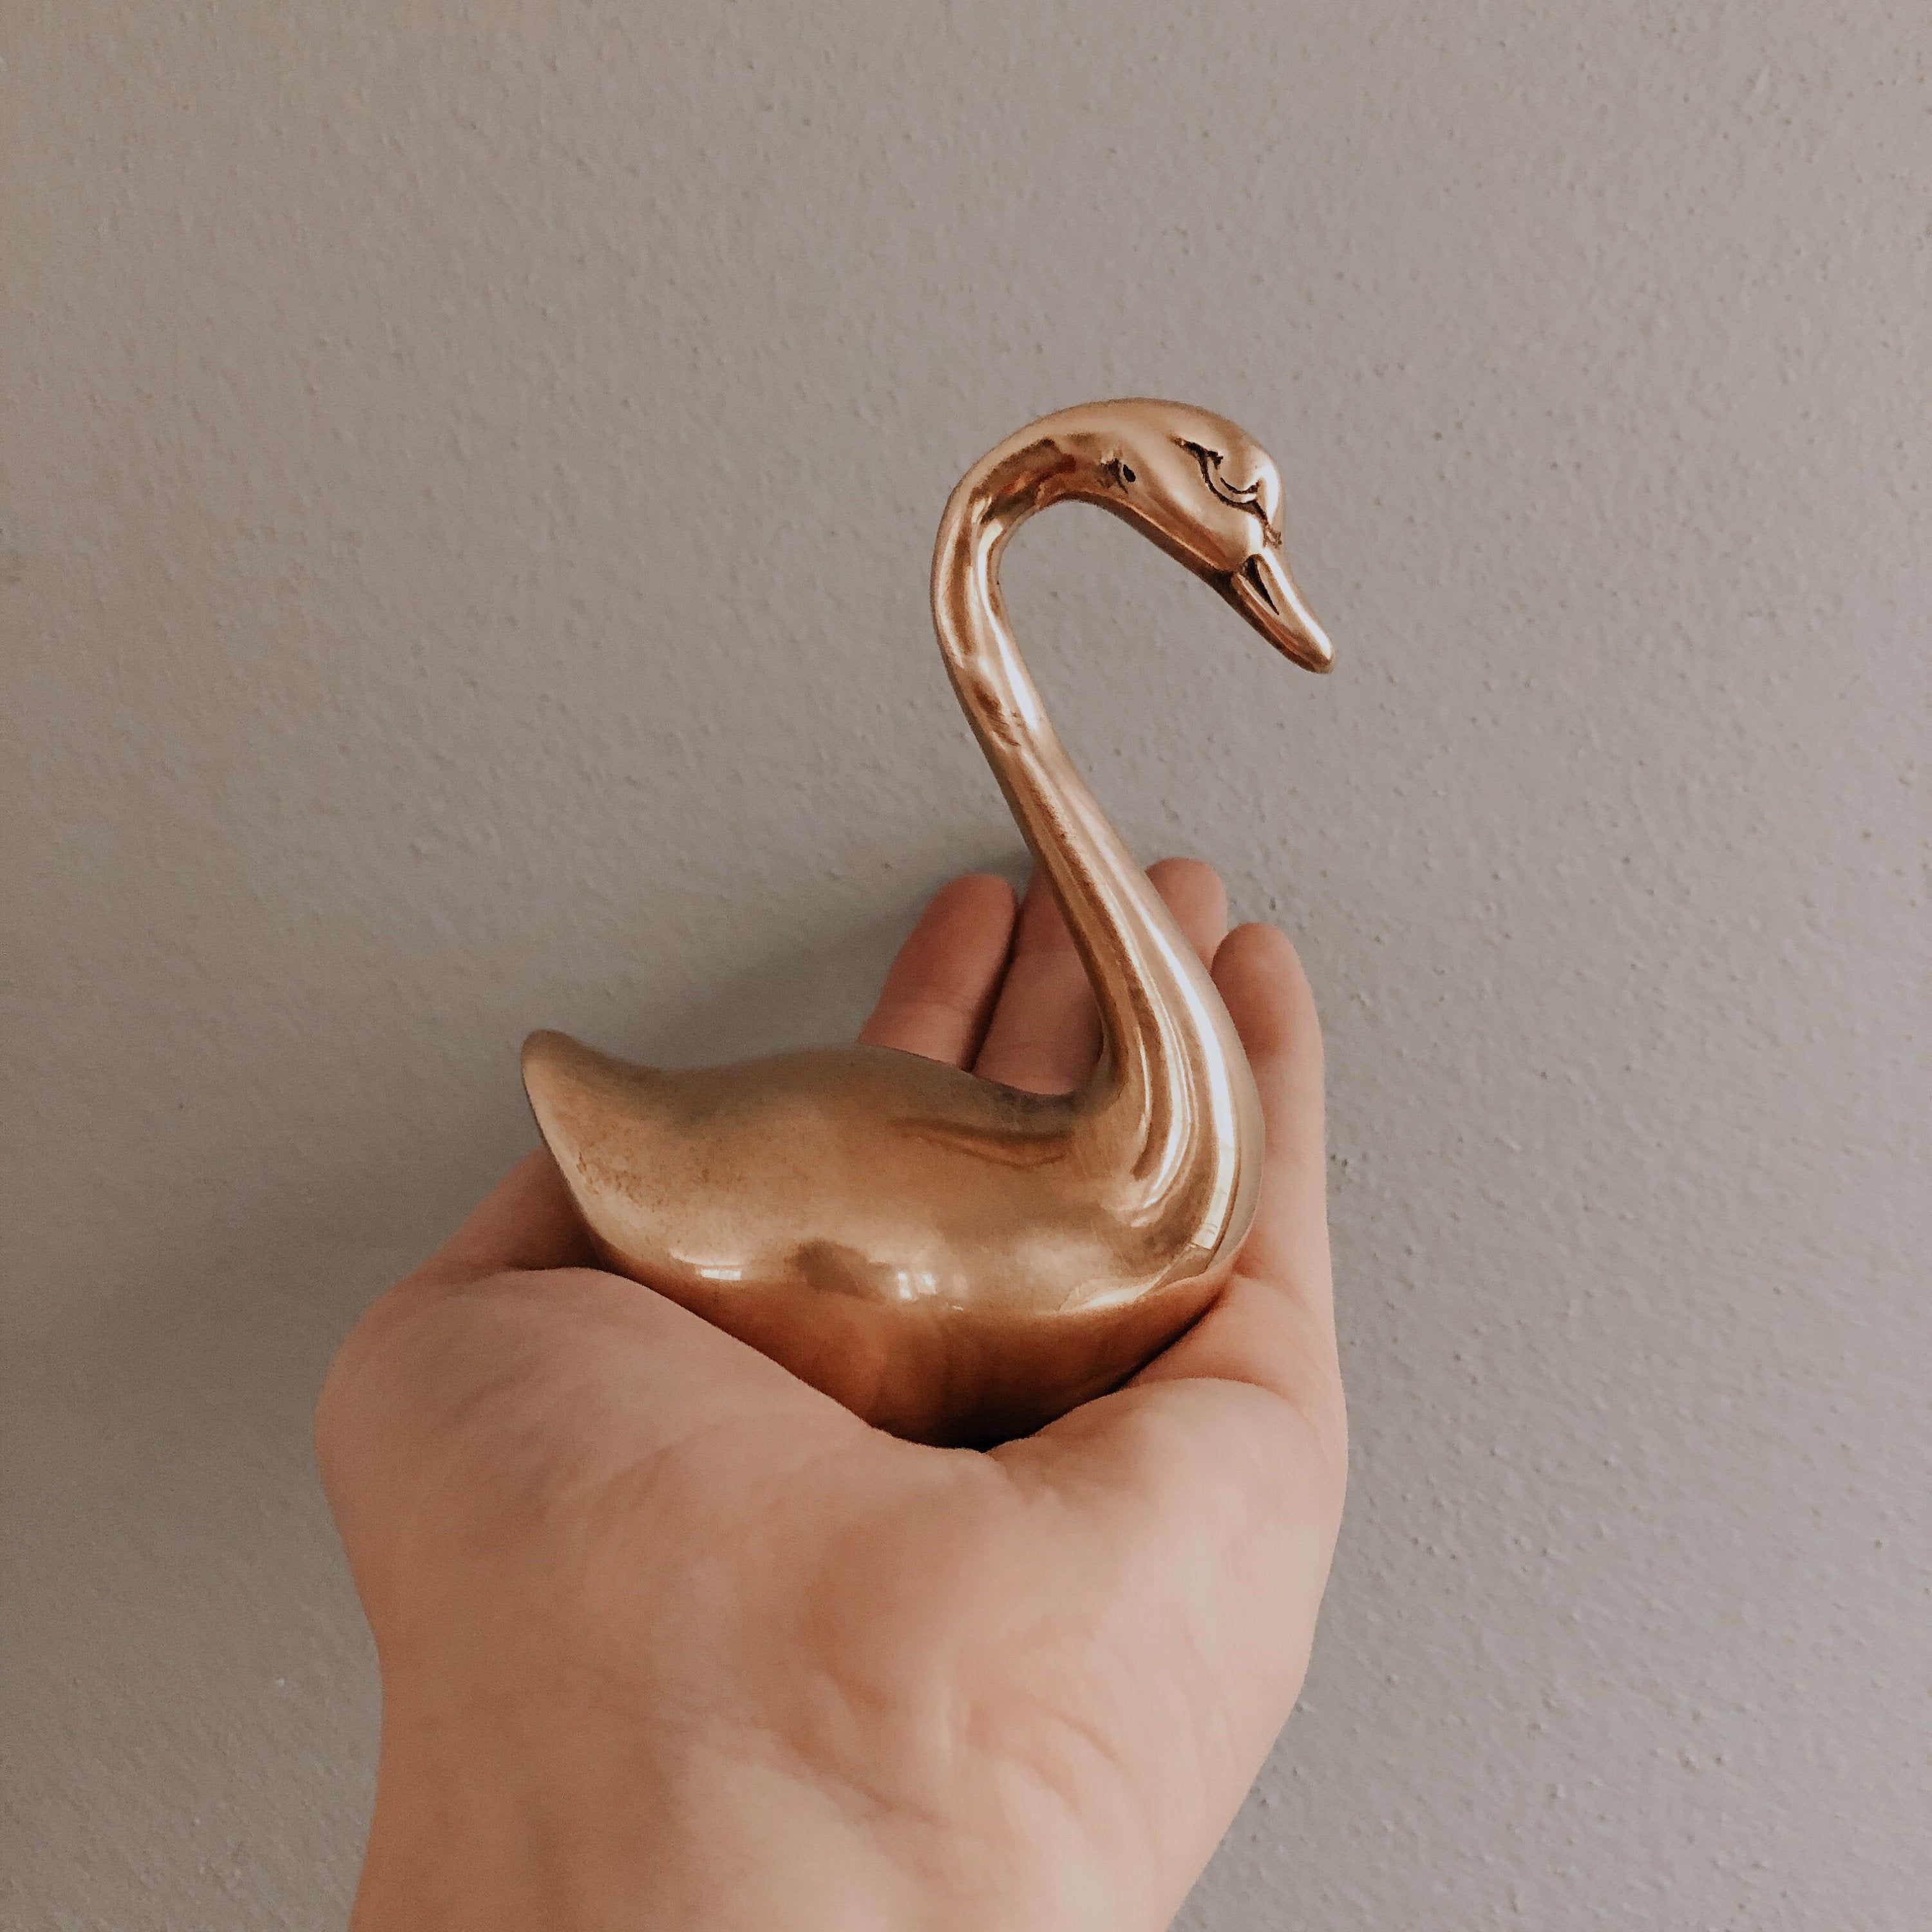 🦢 Vintage Brass Swan Figurine // SOLD BY SHOPELEANORLOUISE